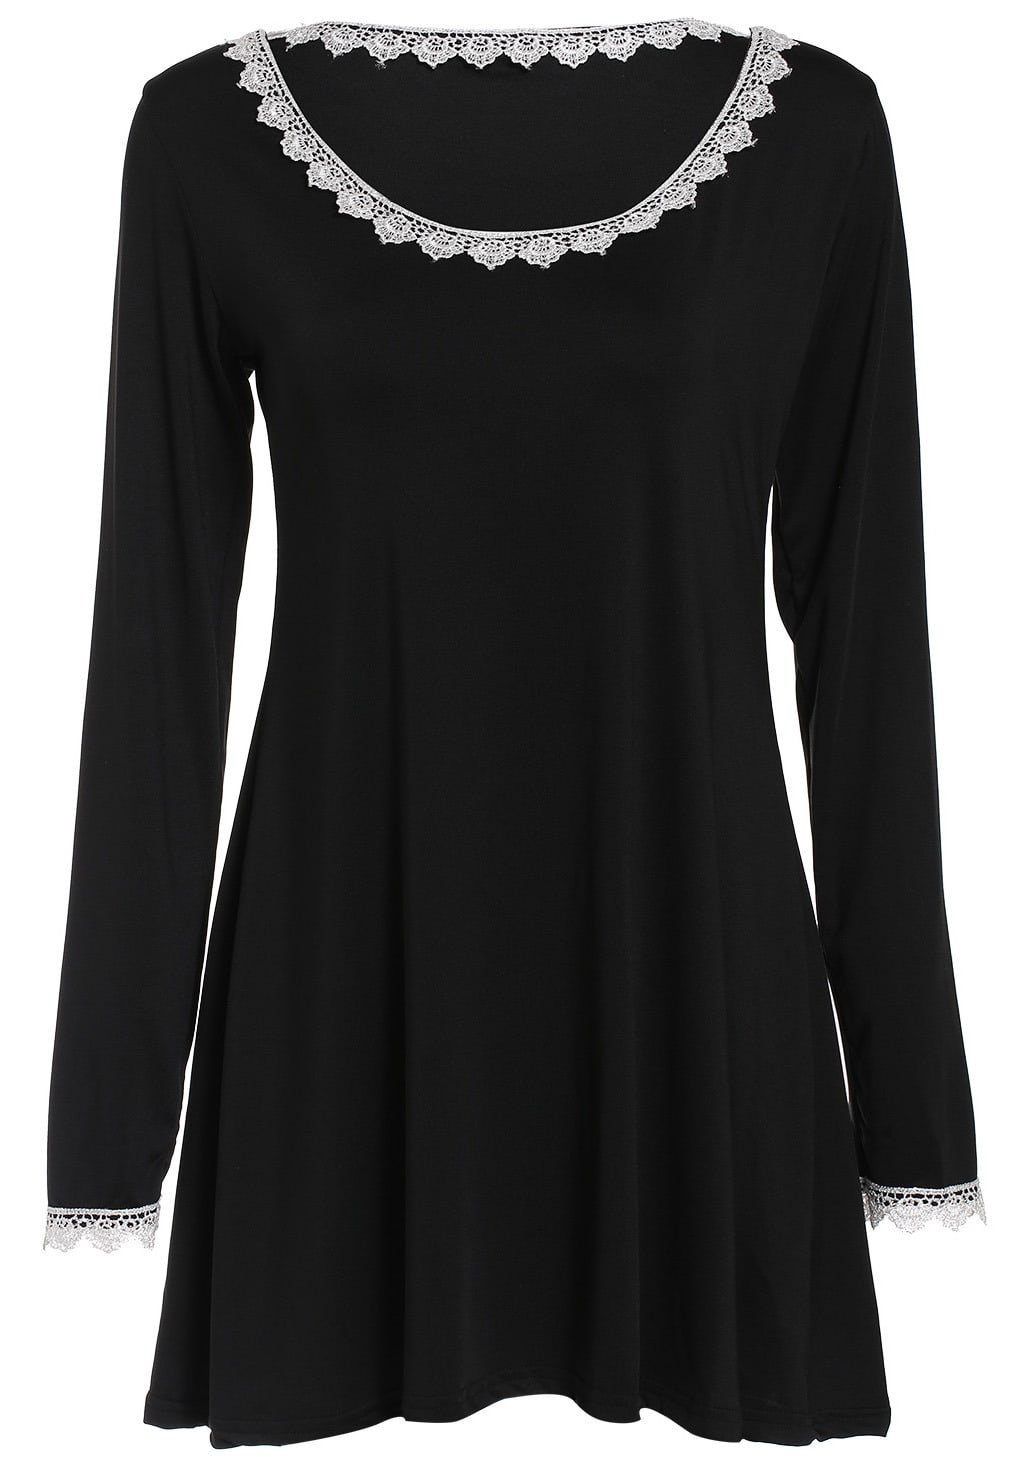 Black Round Neck Long Sleeve Panelled Lace A Line Dress